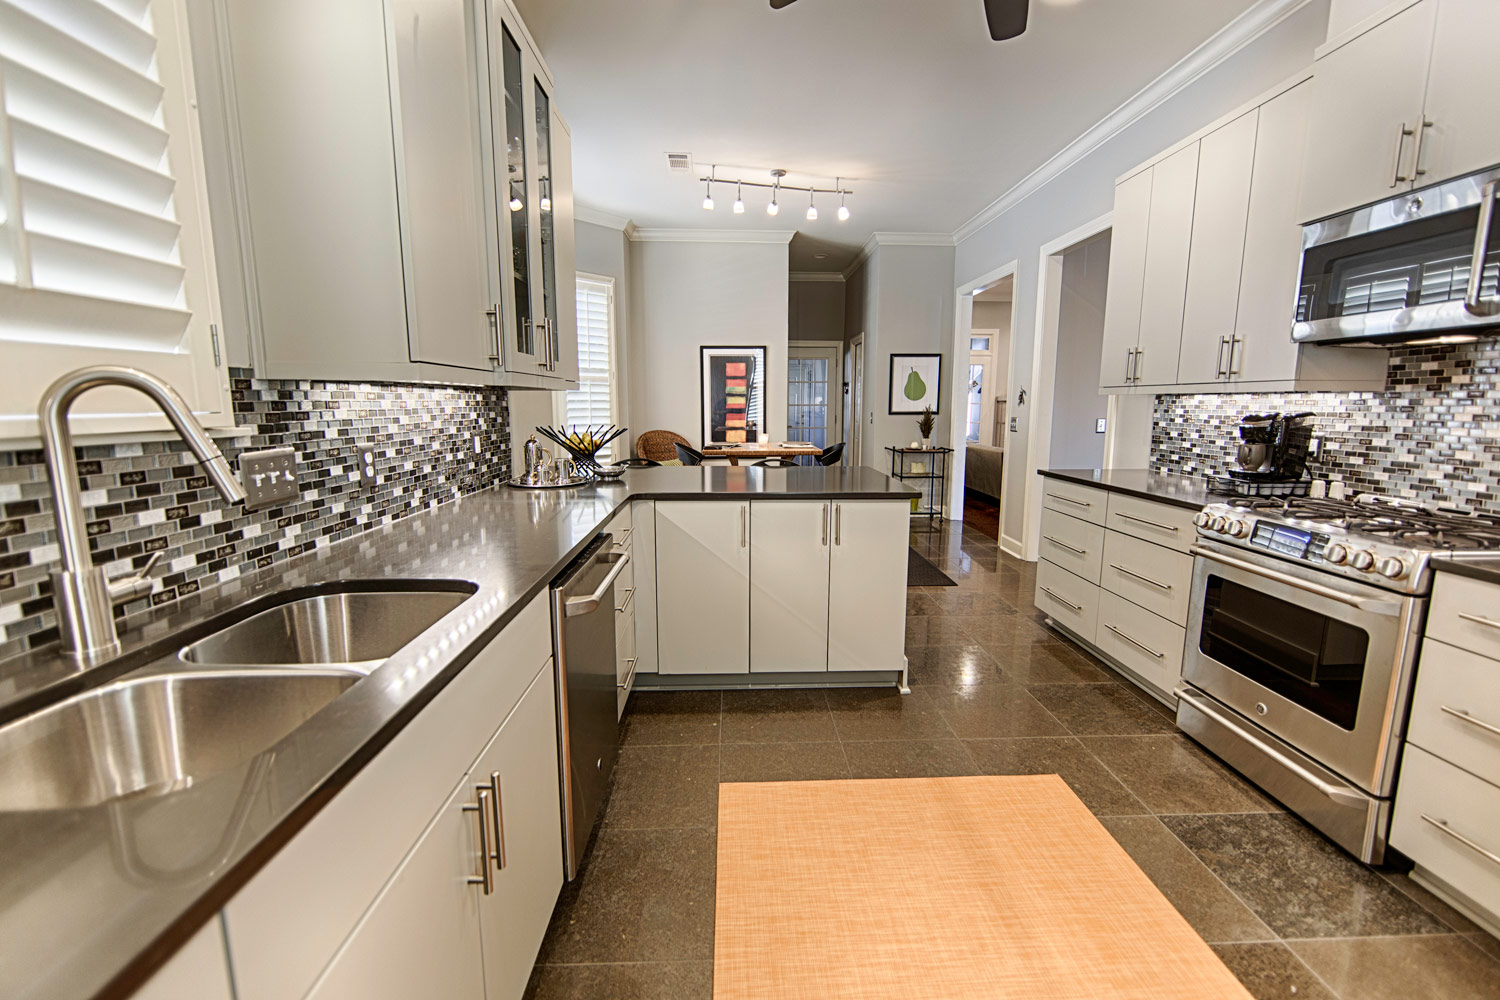 Shiloh Eclipse frameless cabinets with unadorned slab doors